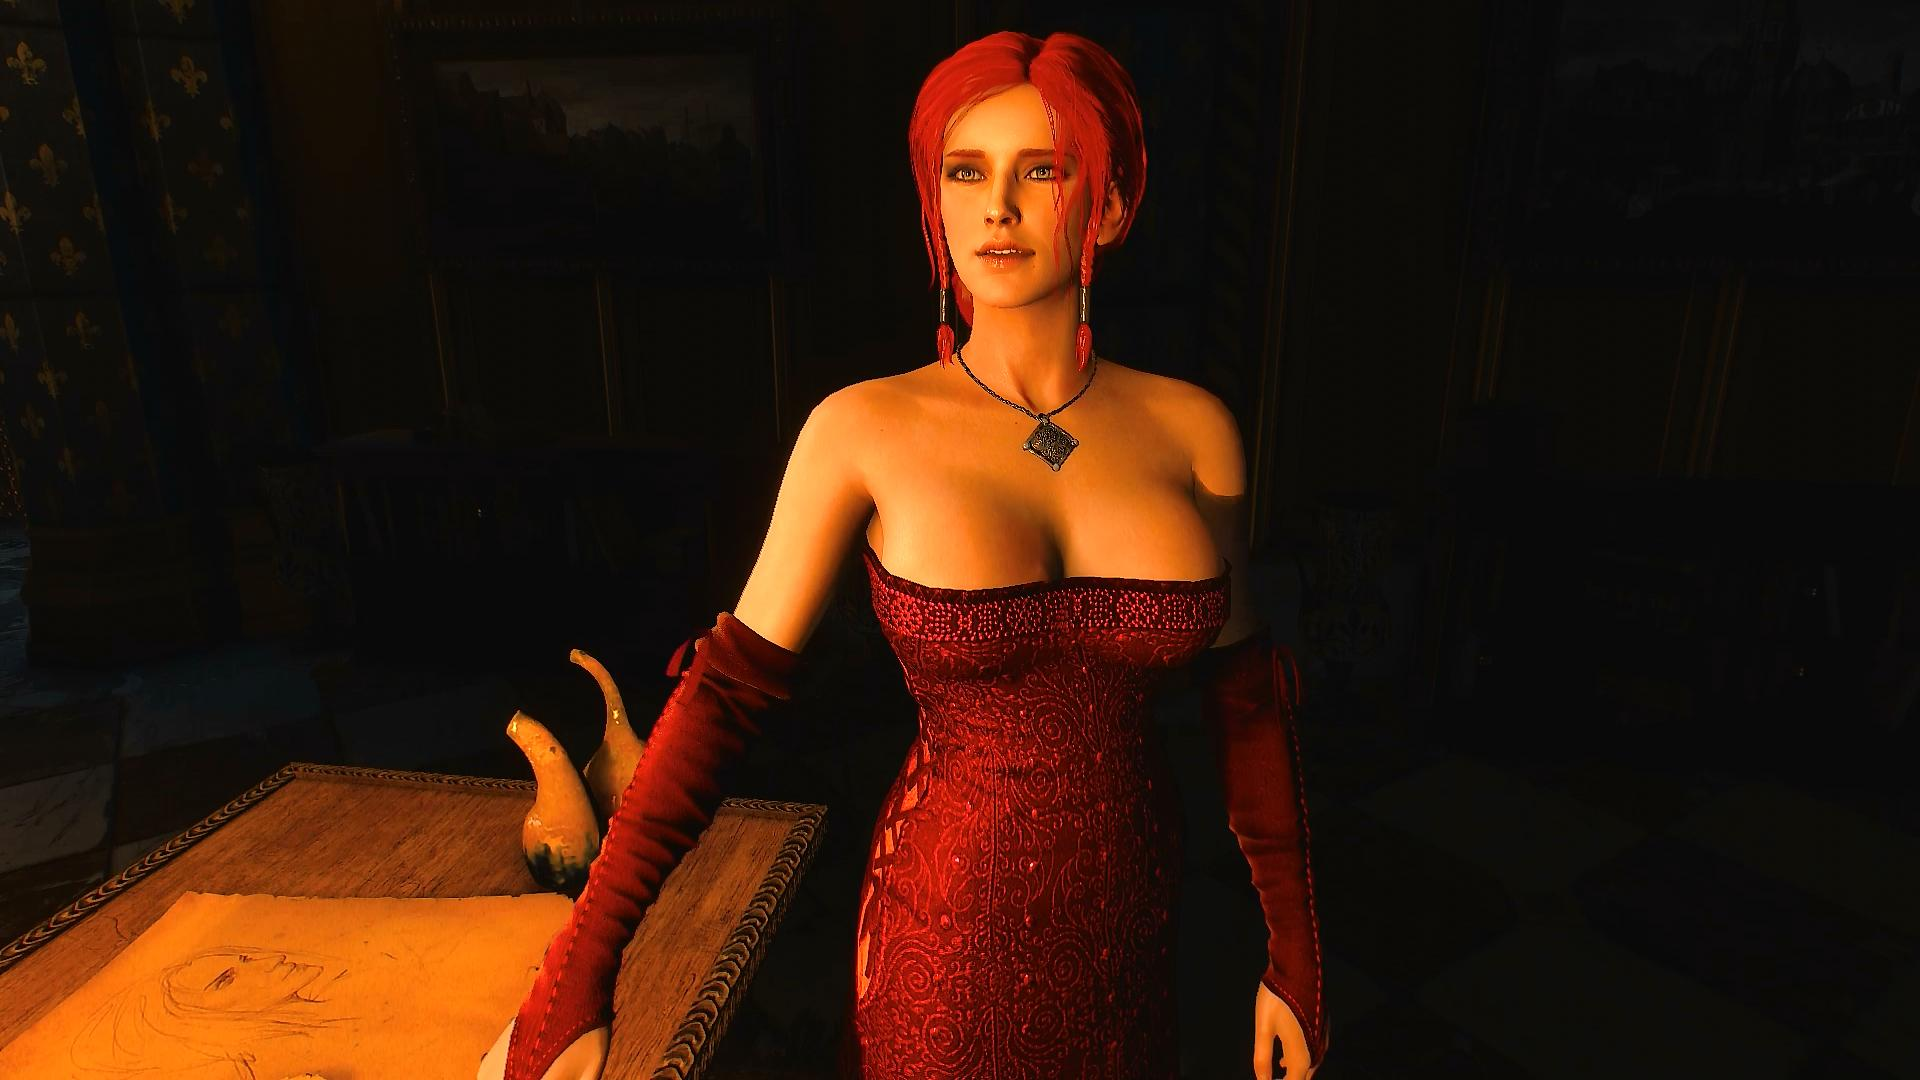 Triss at The Witcher 3 Nexus - Mods and community